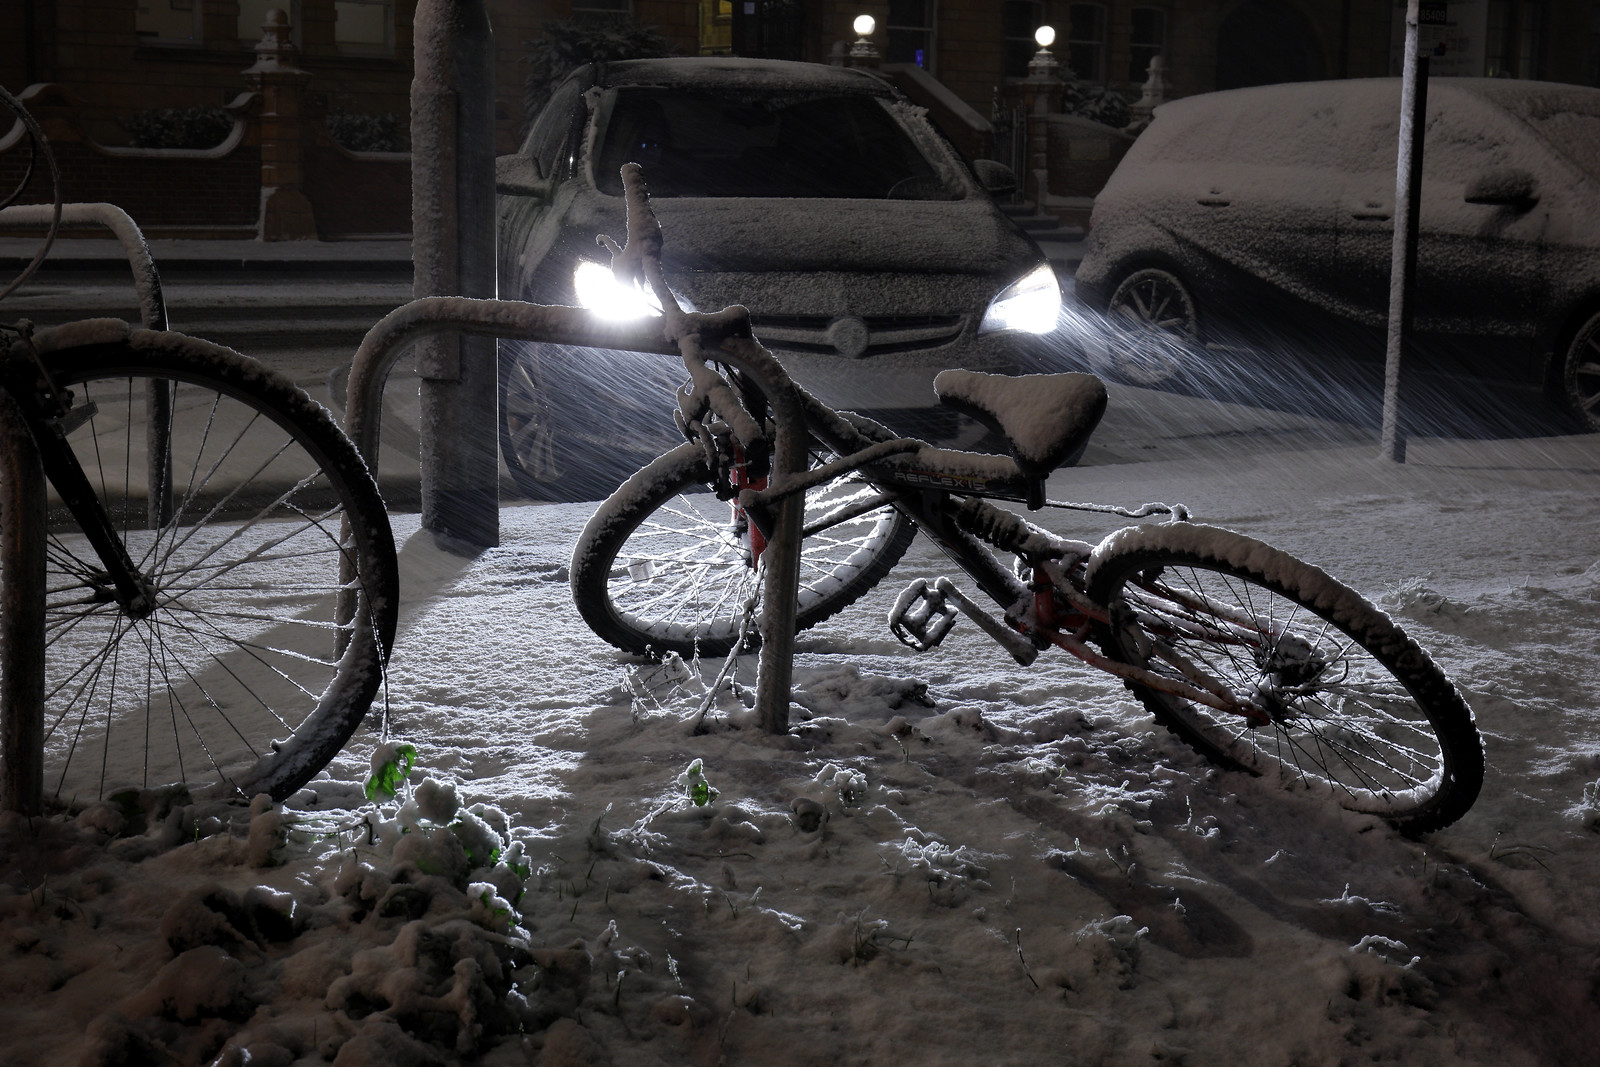 Bicycle-shaped objects in the snow